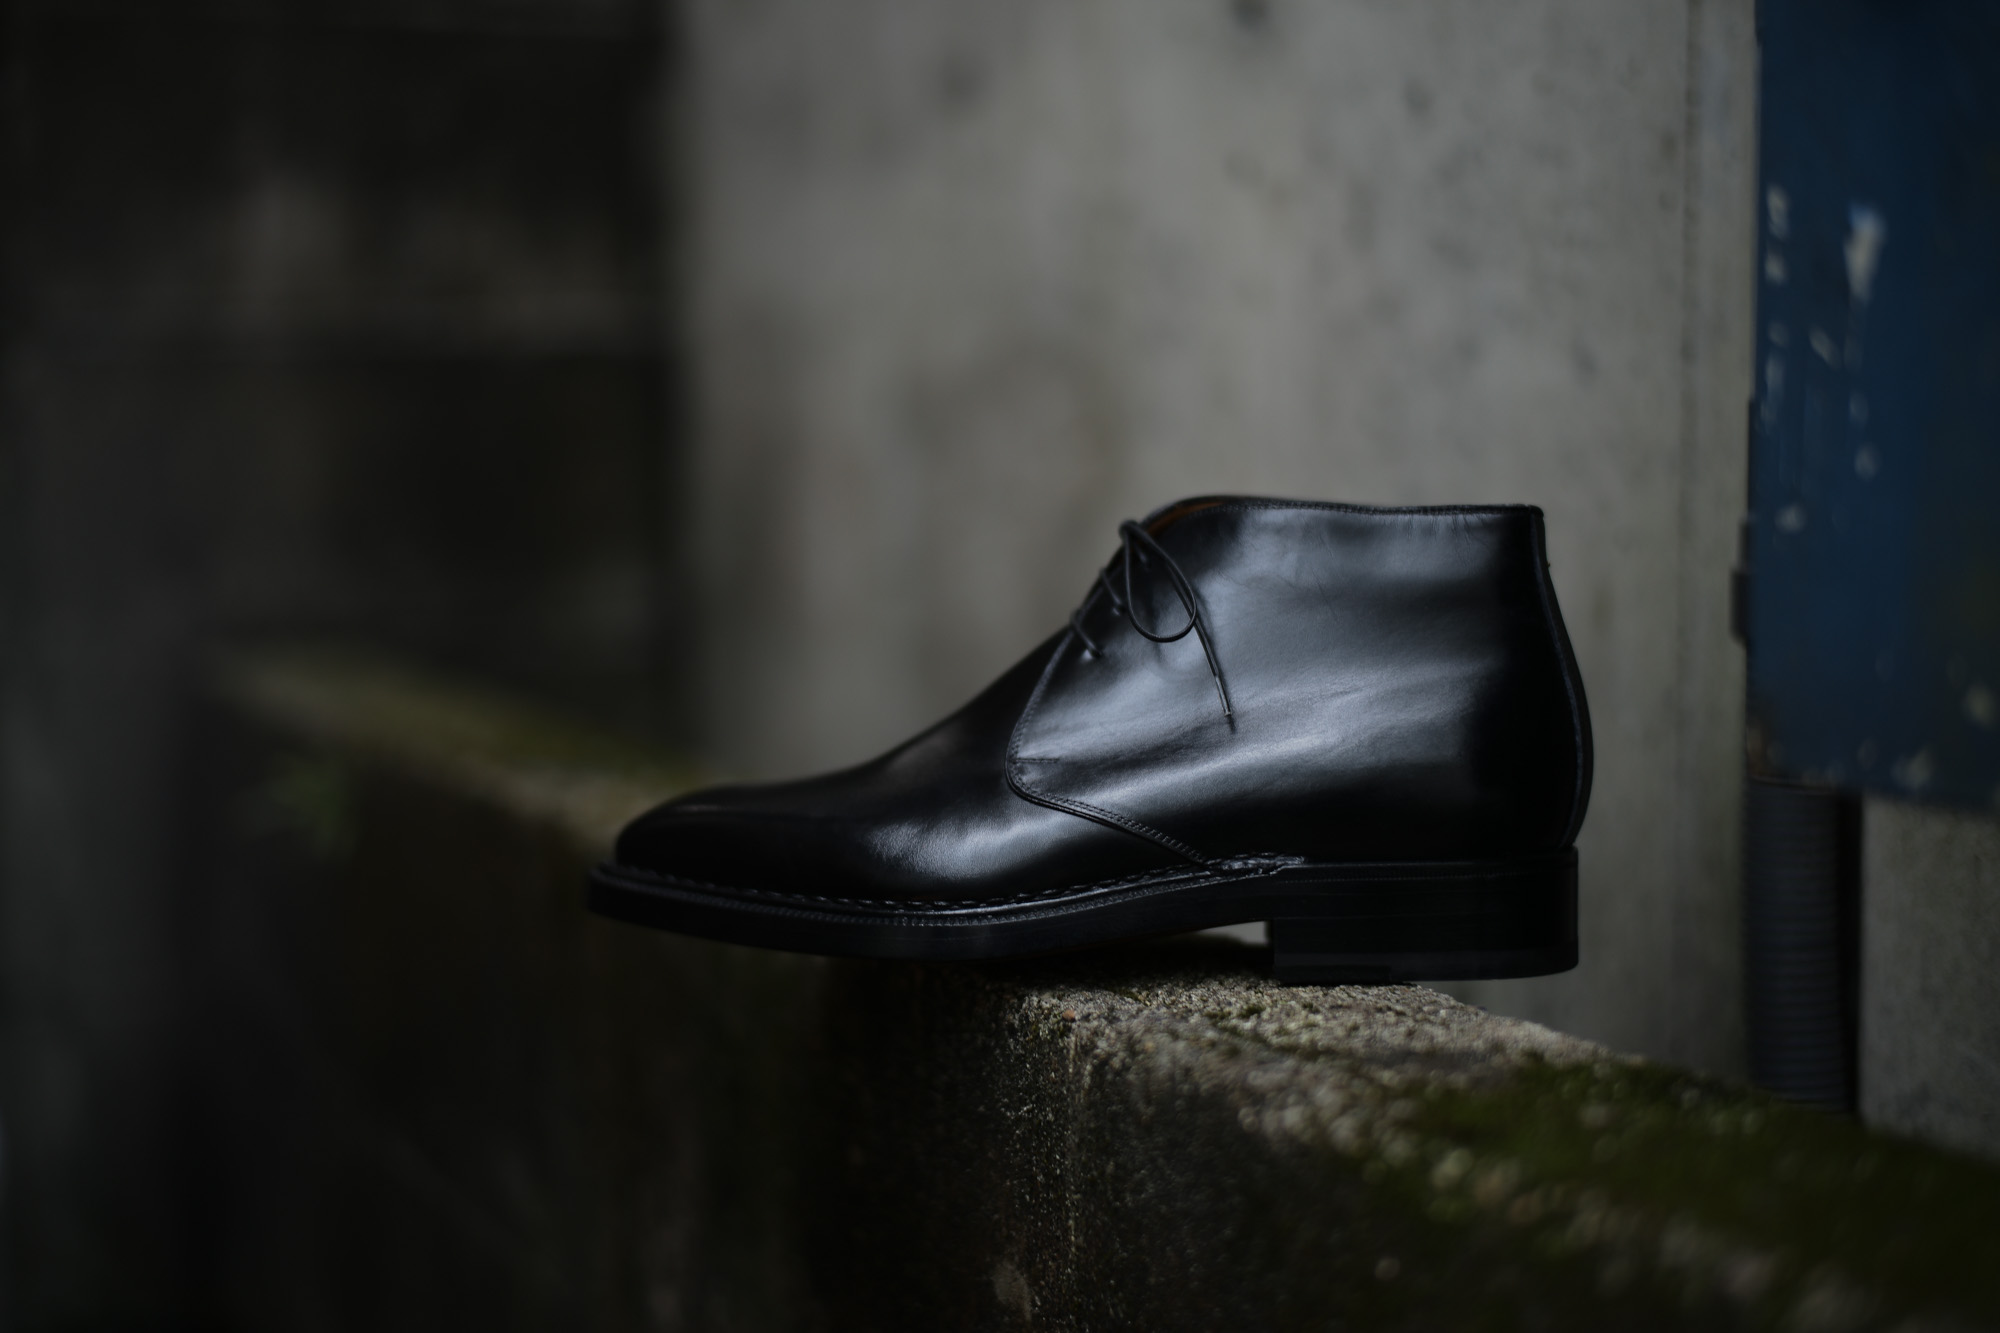 ENZO BONAFE (エンツォボナフェ) ART.3722 Chukka boots チャッカブーツ Horween Shell Cordovan Leather ホーウィン社 シェルコードバンレザー チャッカブーツ コードバンブーツ No.4  made in italy (イタリア製) 2017 秋冬 愛知 名古屋 Alto e Diritto アルト エ デリット エンツォボナフェ コードバン チャッカ